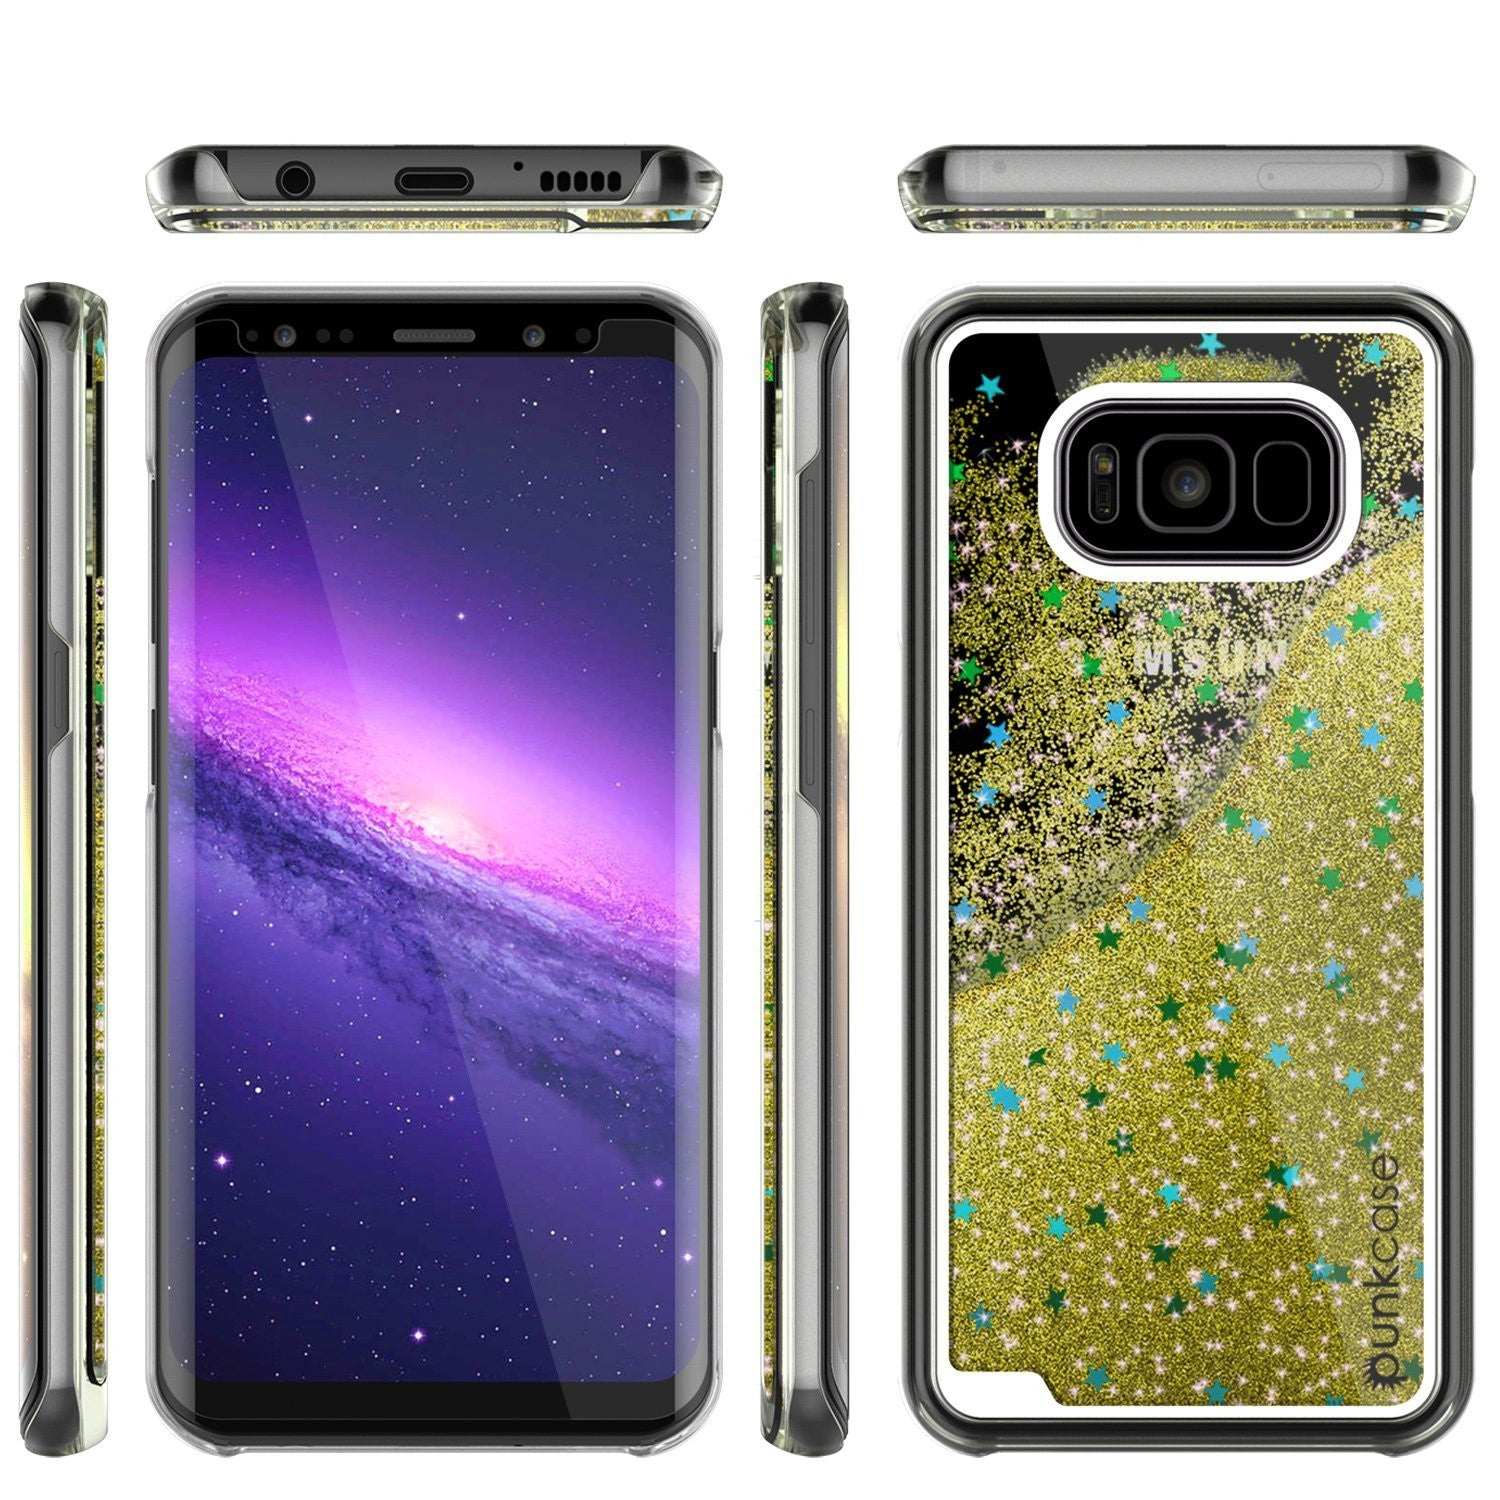 Galaxy S8 Case, Punkcase Liquid Gold Series Protective Dual Layer Floating Glitter Cover